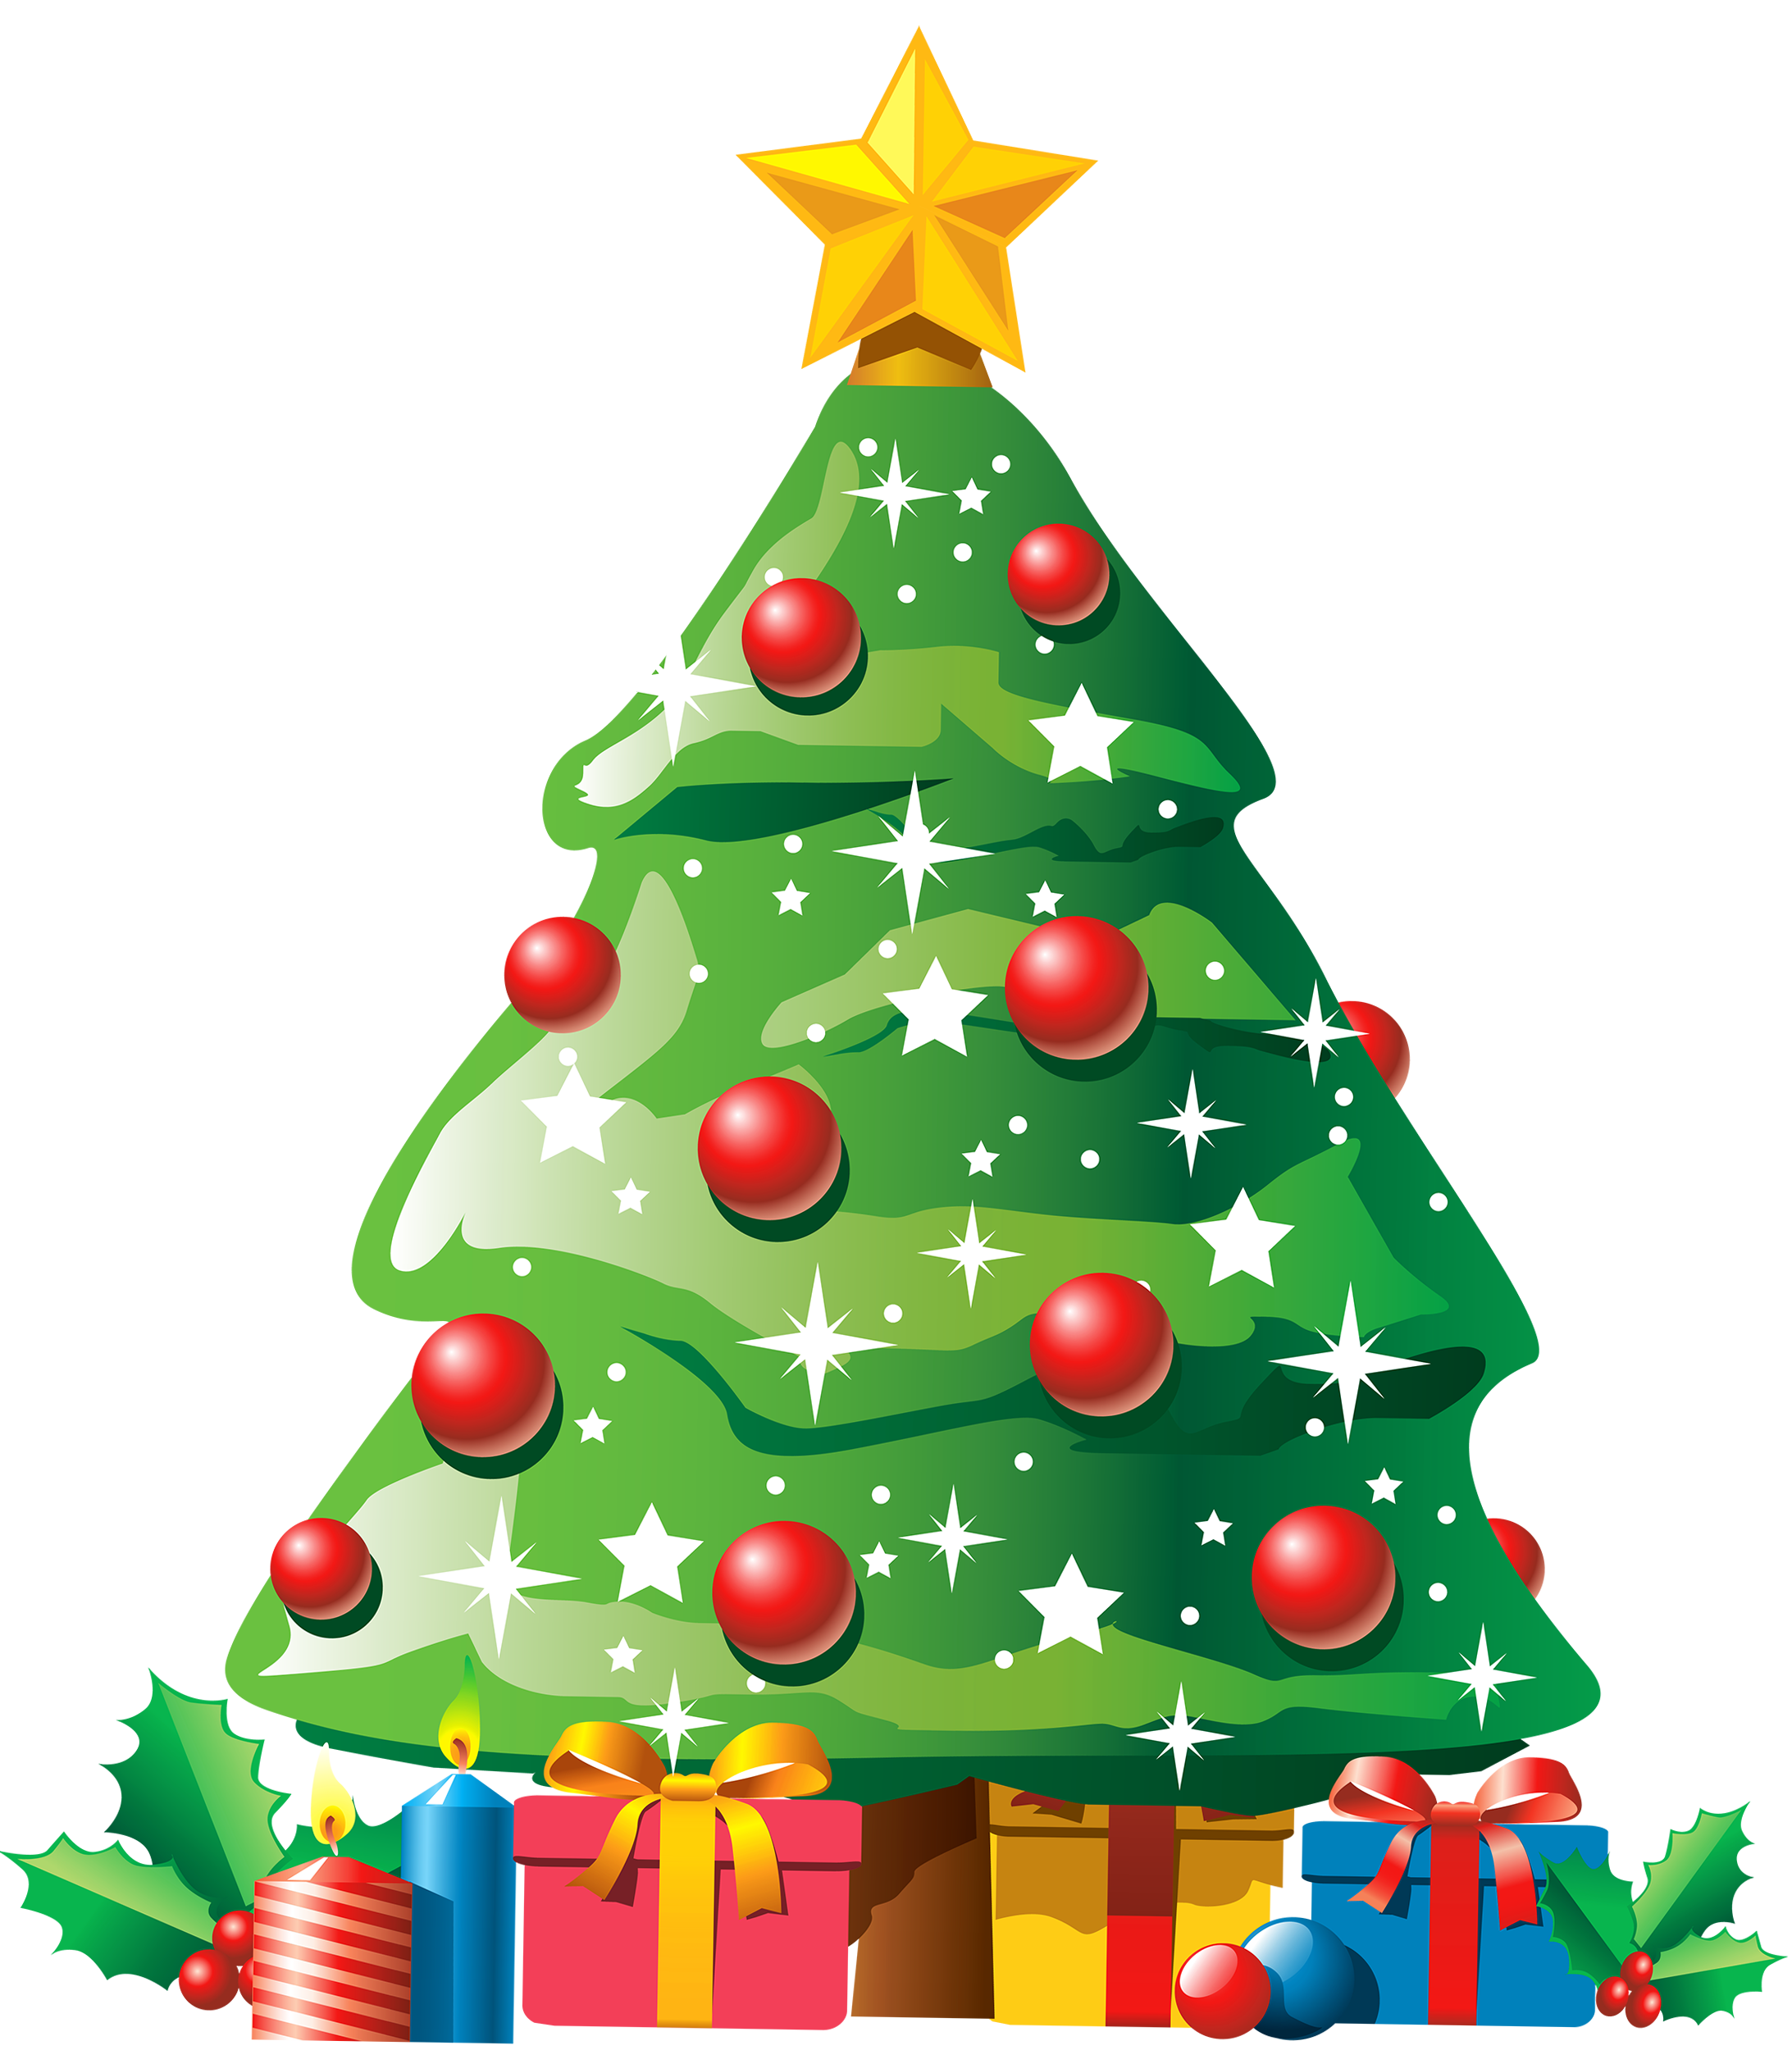 Chrismas tree clipart graphic freeuse stock Christmas Tree with Gifts PNG Clipart - Best WEB Clipart graphic freeuse stock